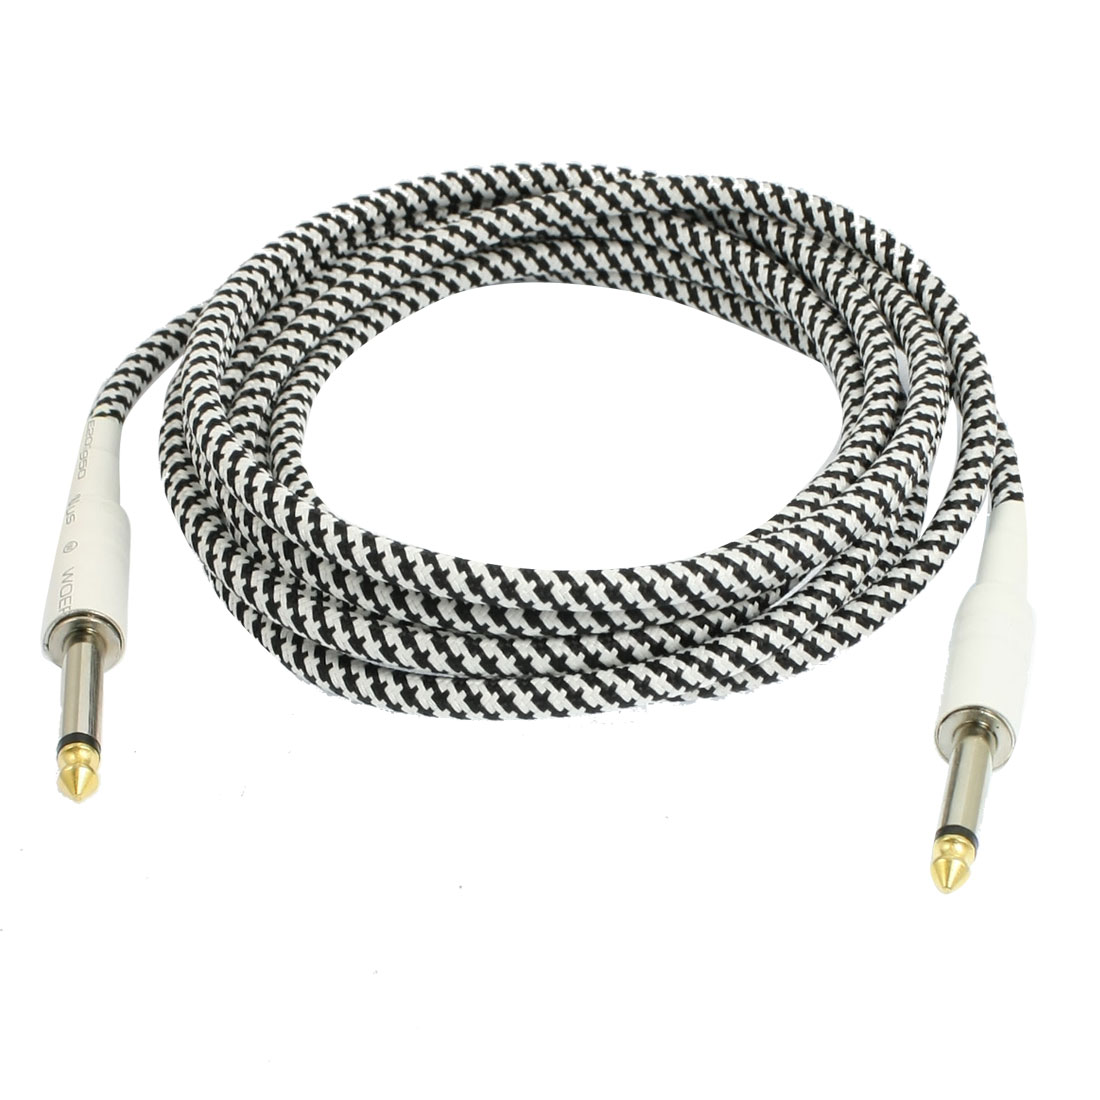 6.3mm Plug Braided Tweed Guitar Cable Cord White Black 3 Meters 9.8 Ft